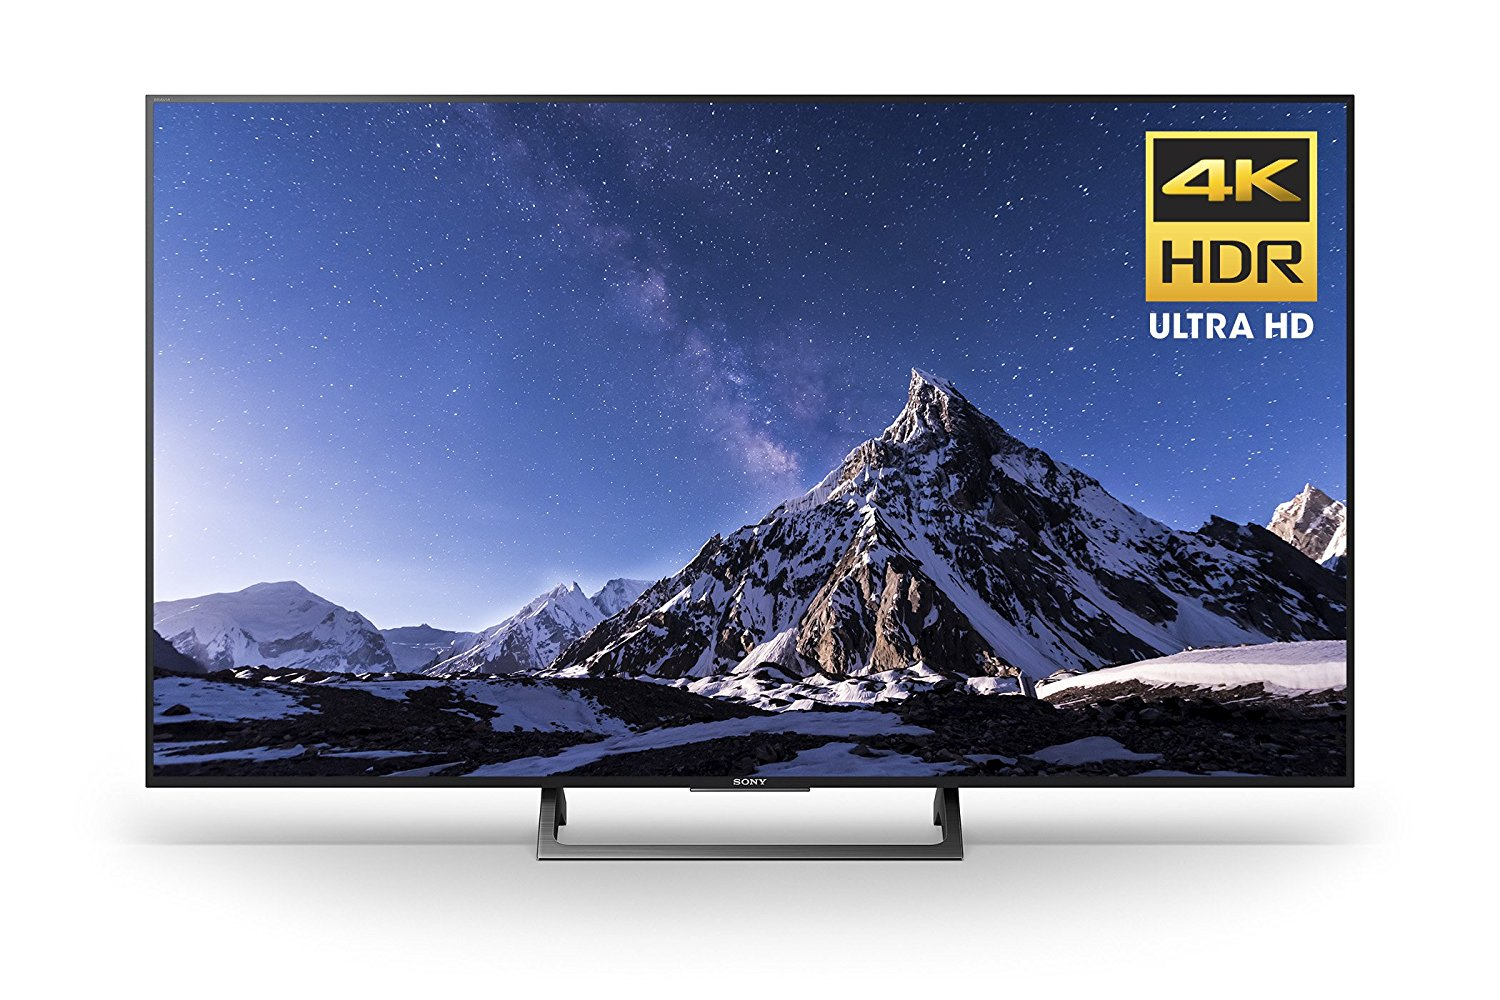 An image of Sony KD49X720E 49-Inch HDR 4K LED 60Hz Smart TV with Sony Motionflow XR 240 | Your TV Set